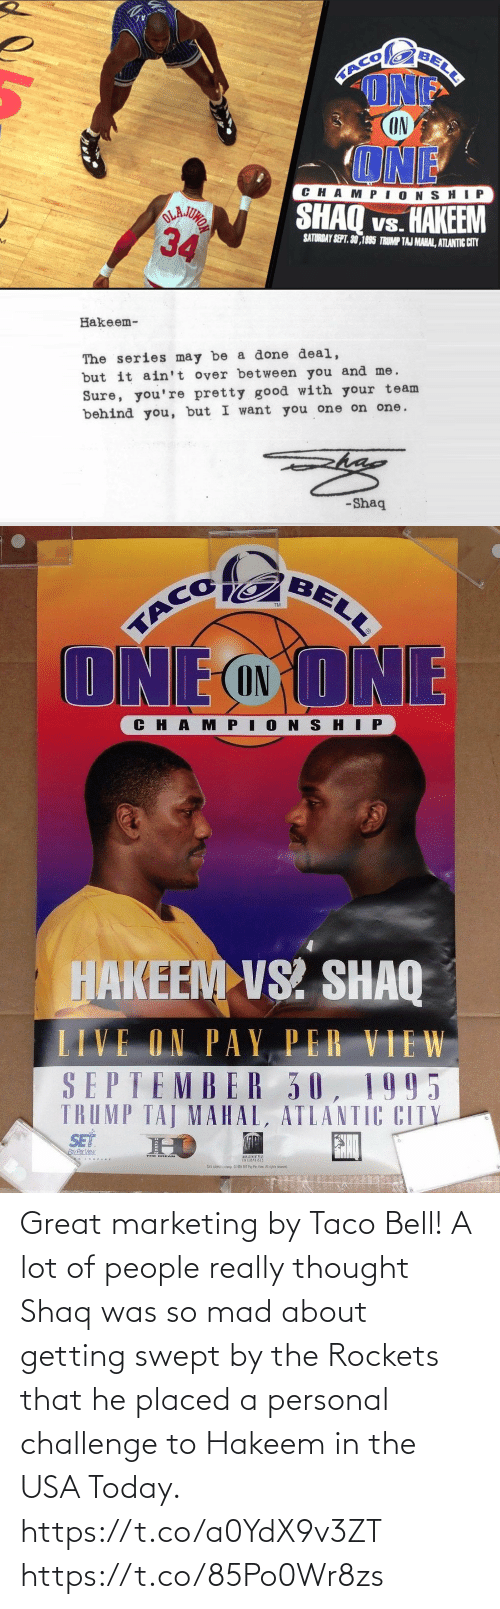 rockets: Great marketing by Taco Bell! A lot of people really thought Shaq was so mad about getting swept by the Rockets that he placed a personal challenge to Hakeem in the USA Today. https://t.co/a0YdX9v3ZT https://t.co/85Po0Wr8zs